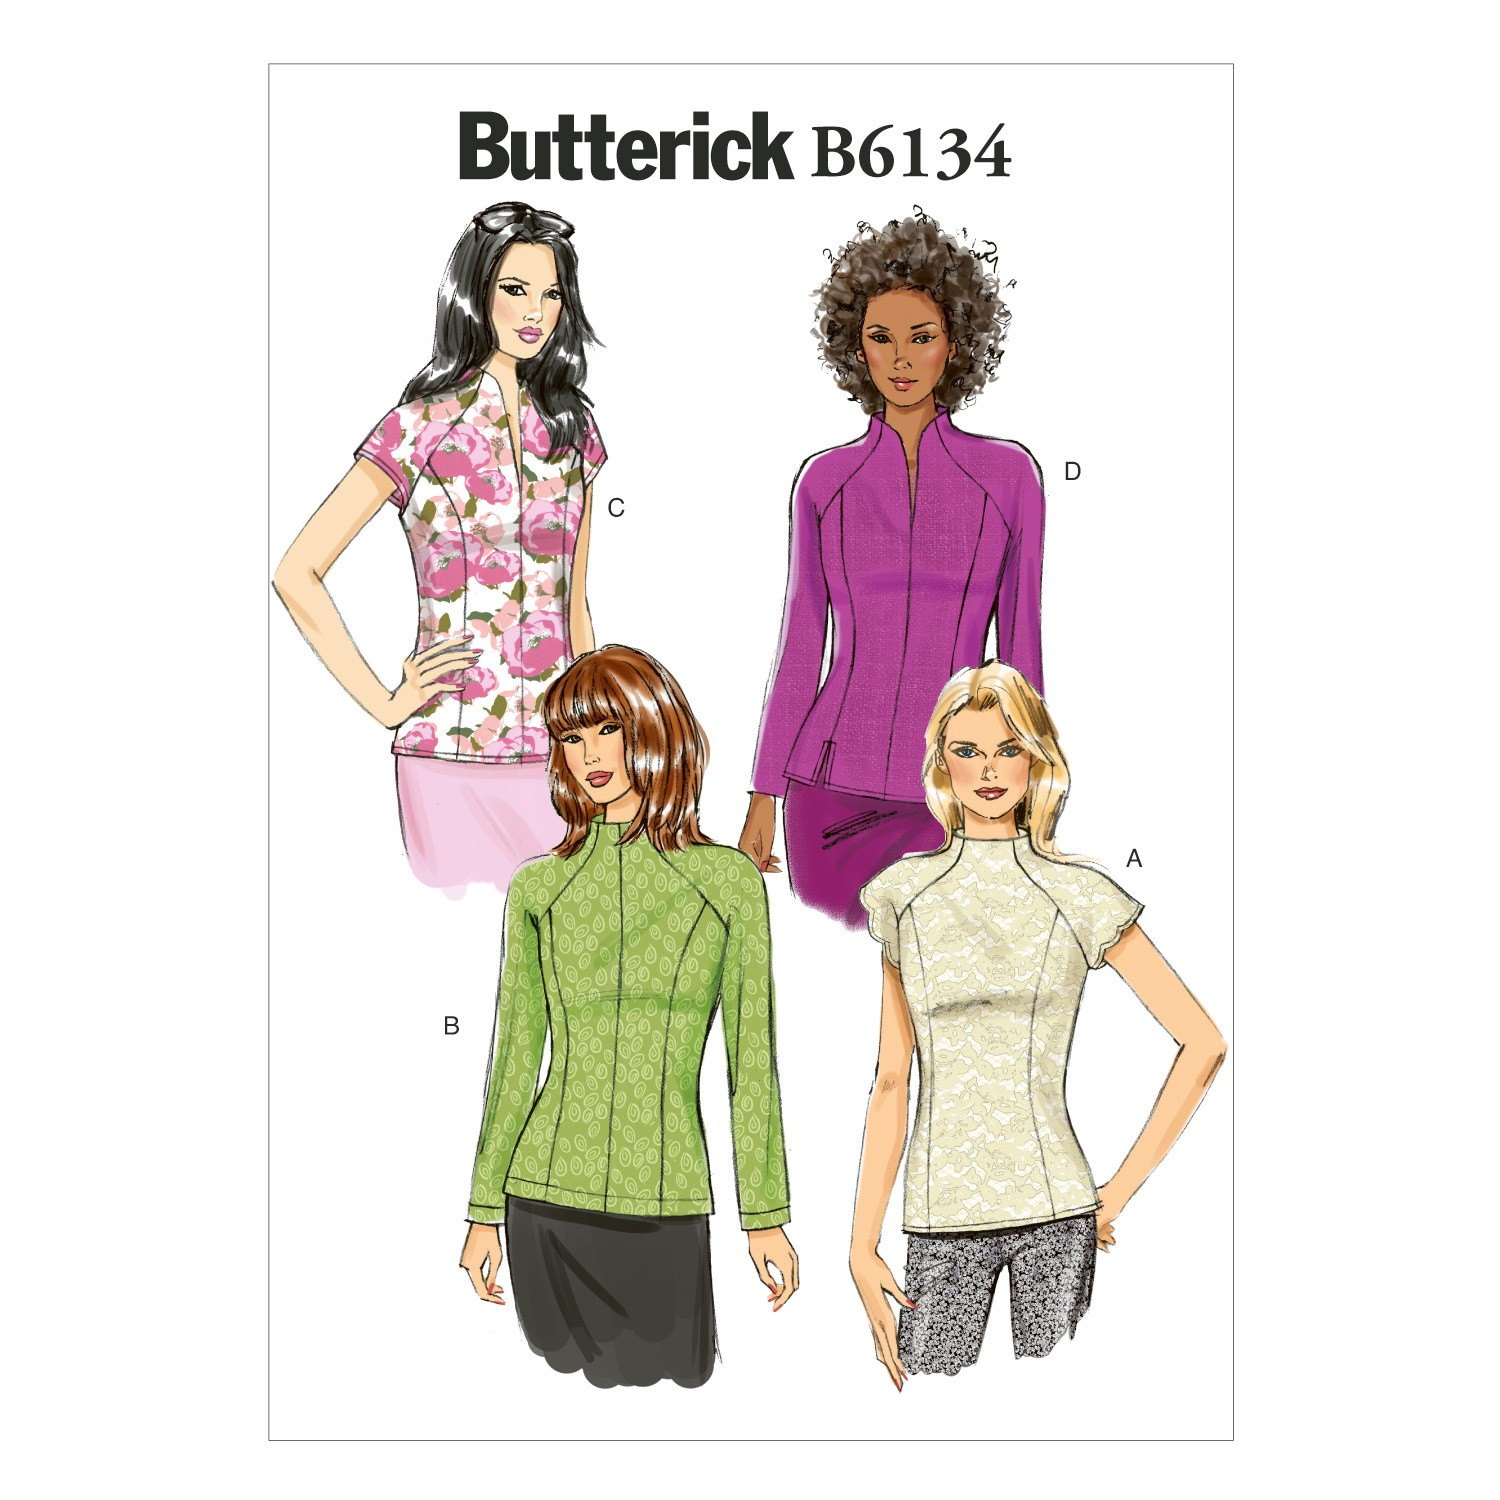 Butterick Sewing Pattern 6134 Misses' Fitted Outdoor Top